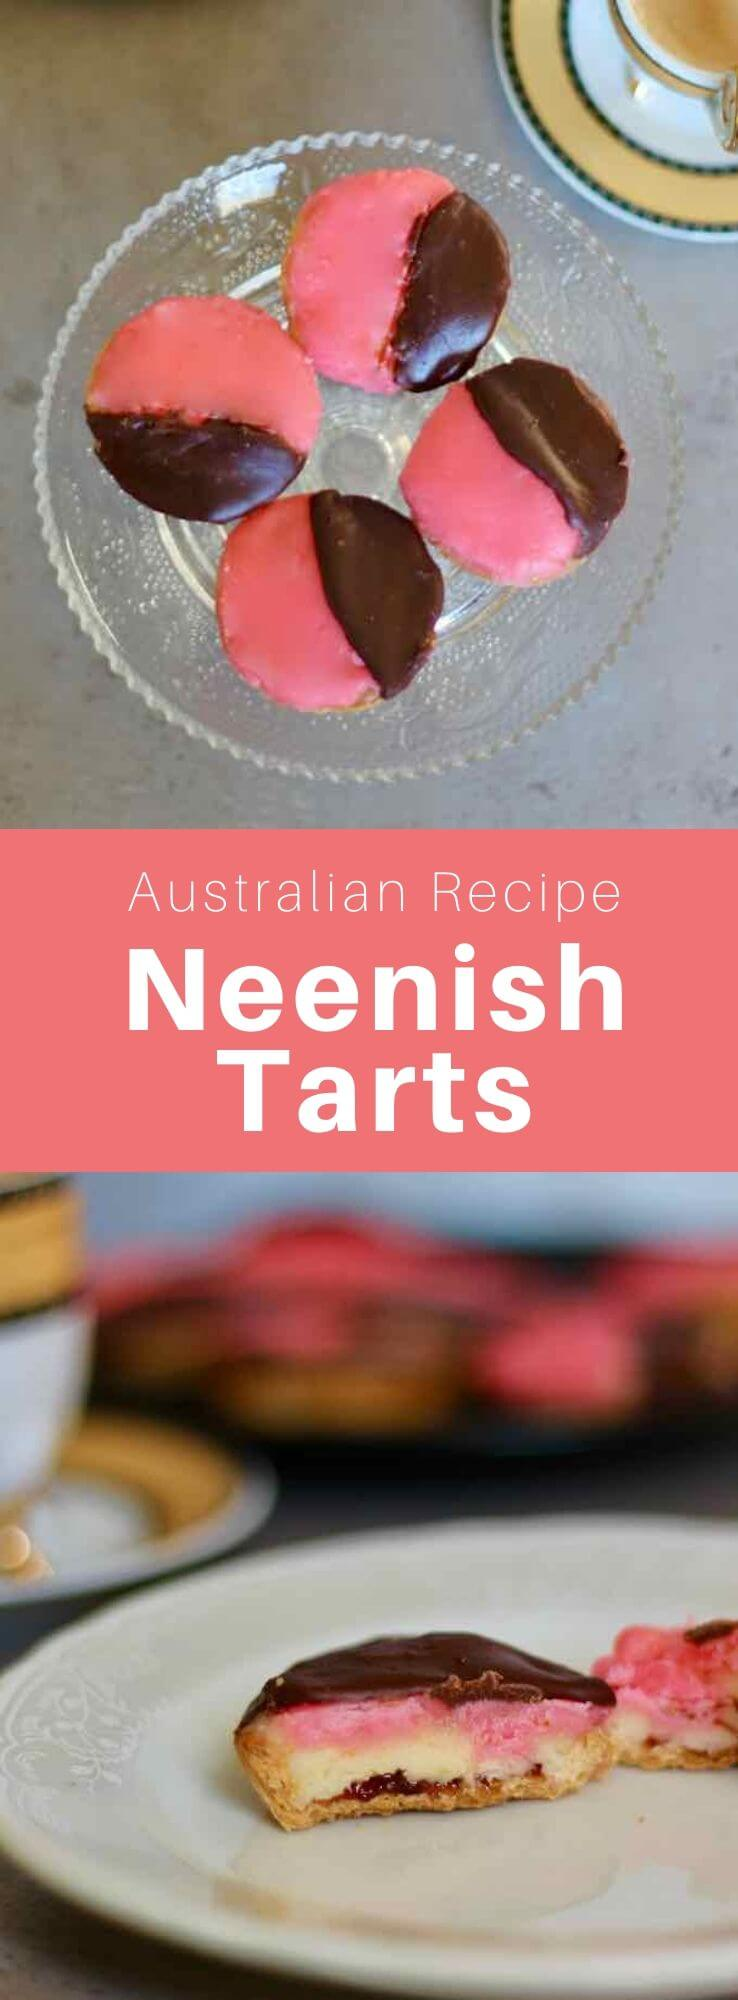 The neenish tart is a tartlet made with a filling of gelatin cream and two-tone icing that is popular in Australia and New Zealand. #Australia #NewZealand #WorldCuisine #196flavors